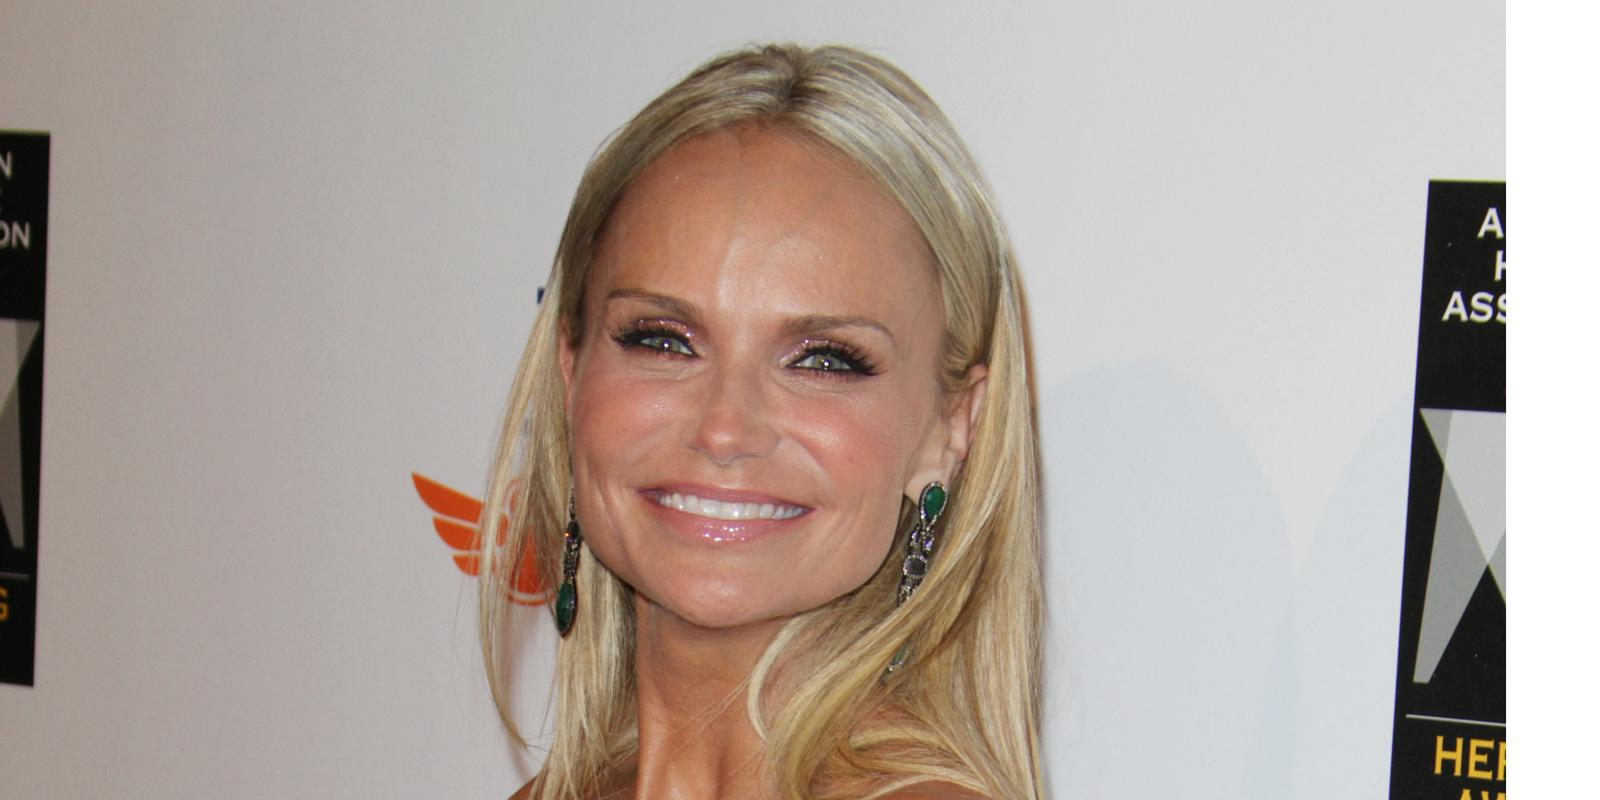 kristin chenoweth still recovering from onset accident